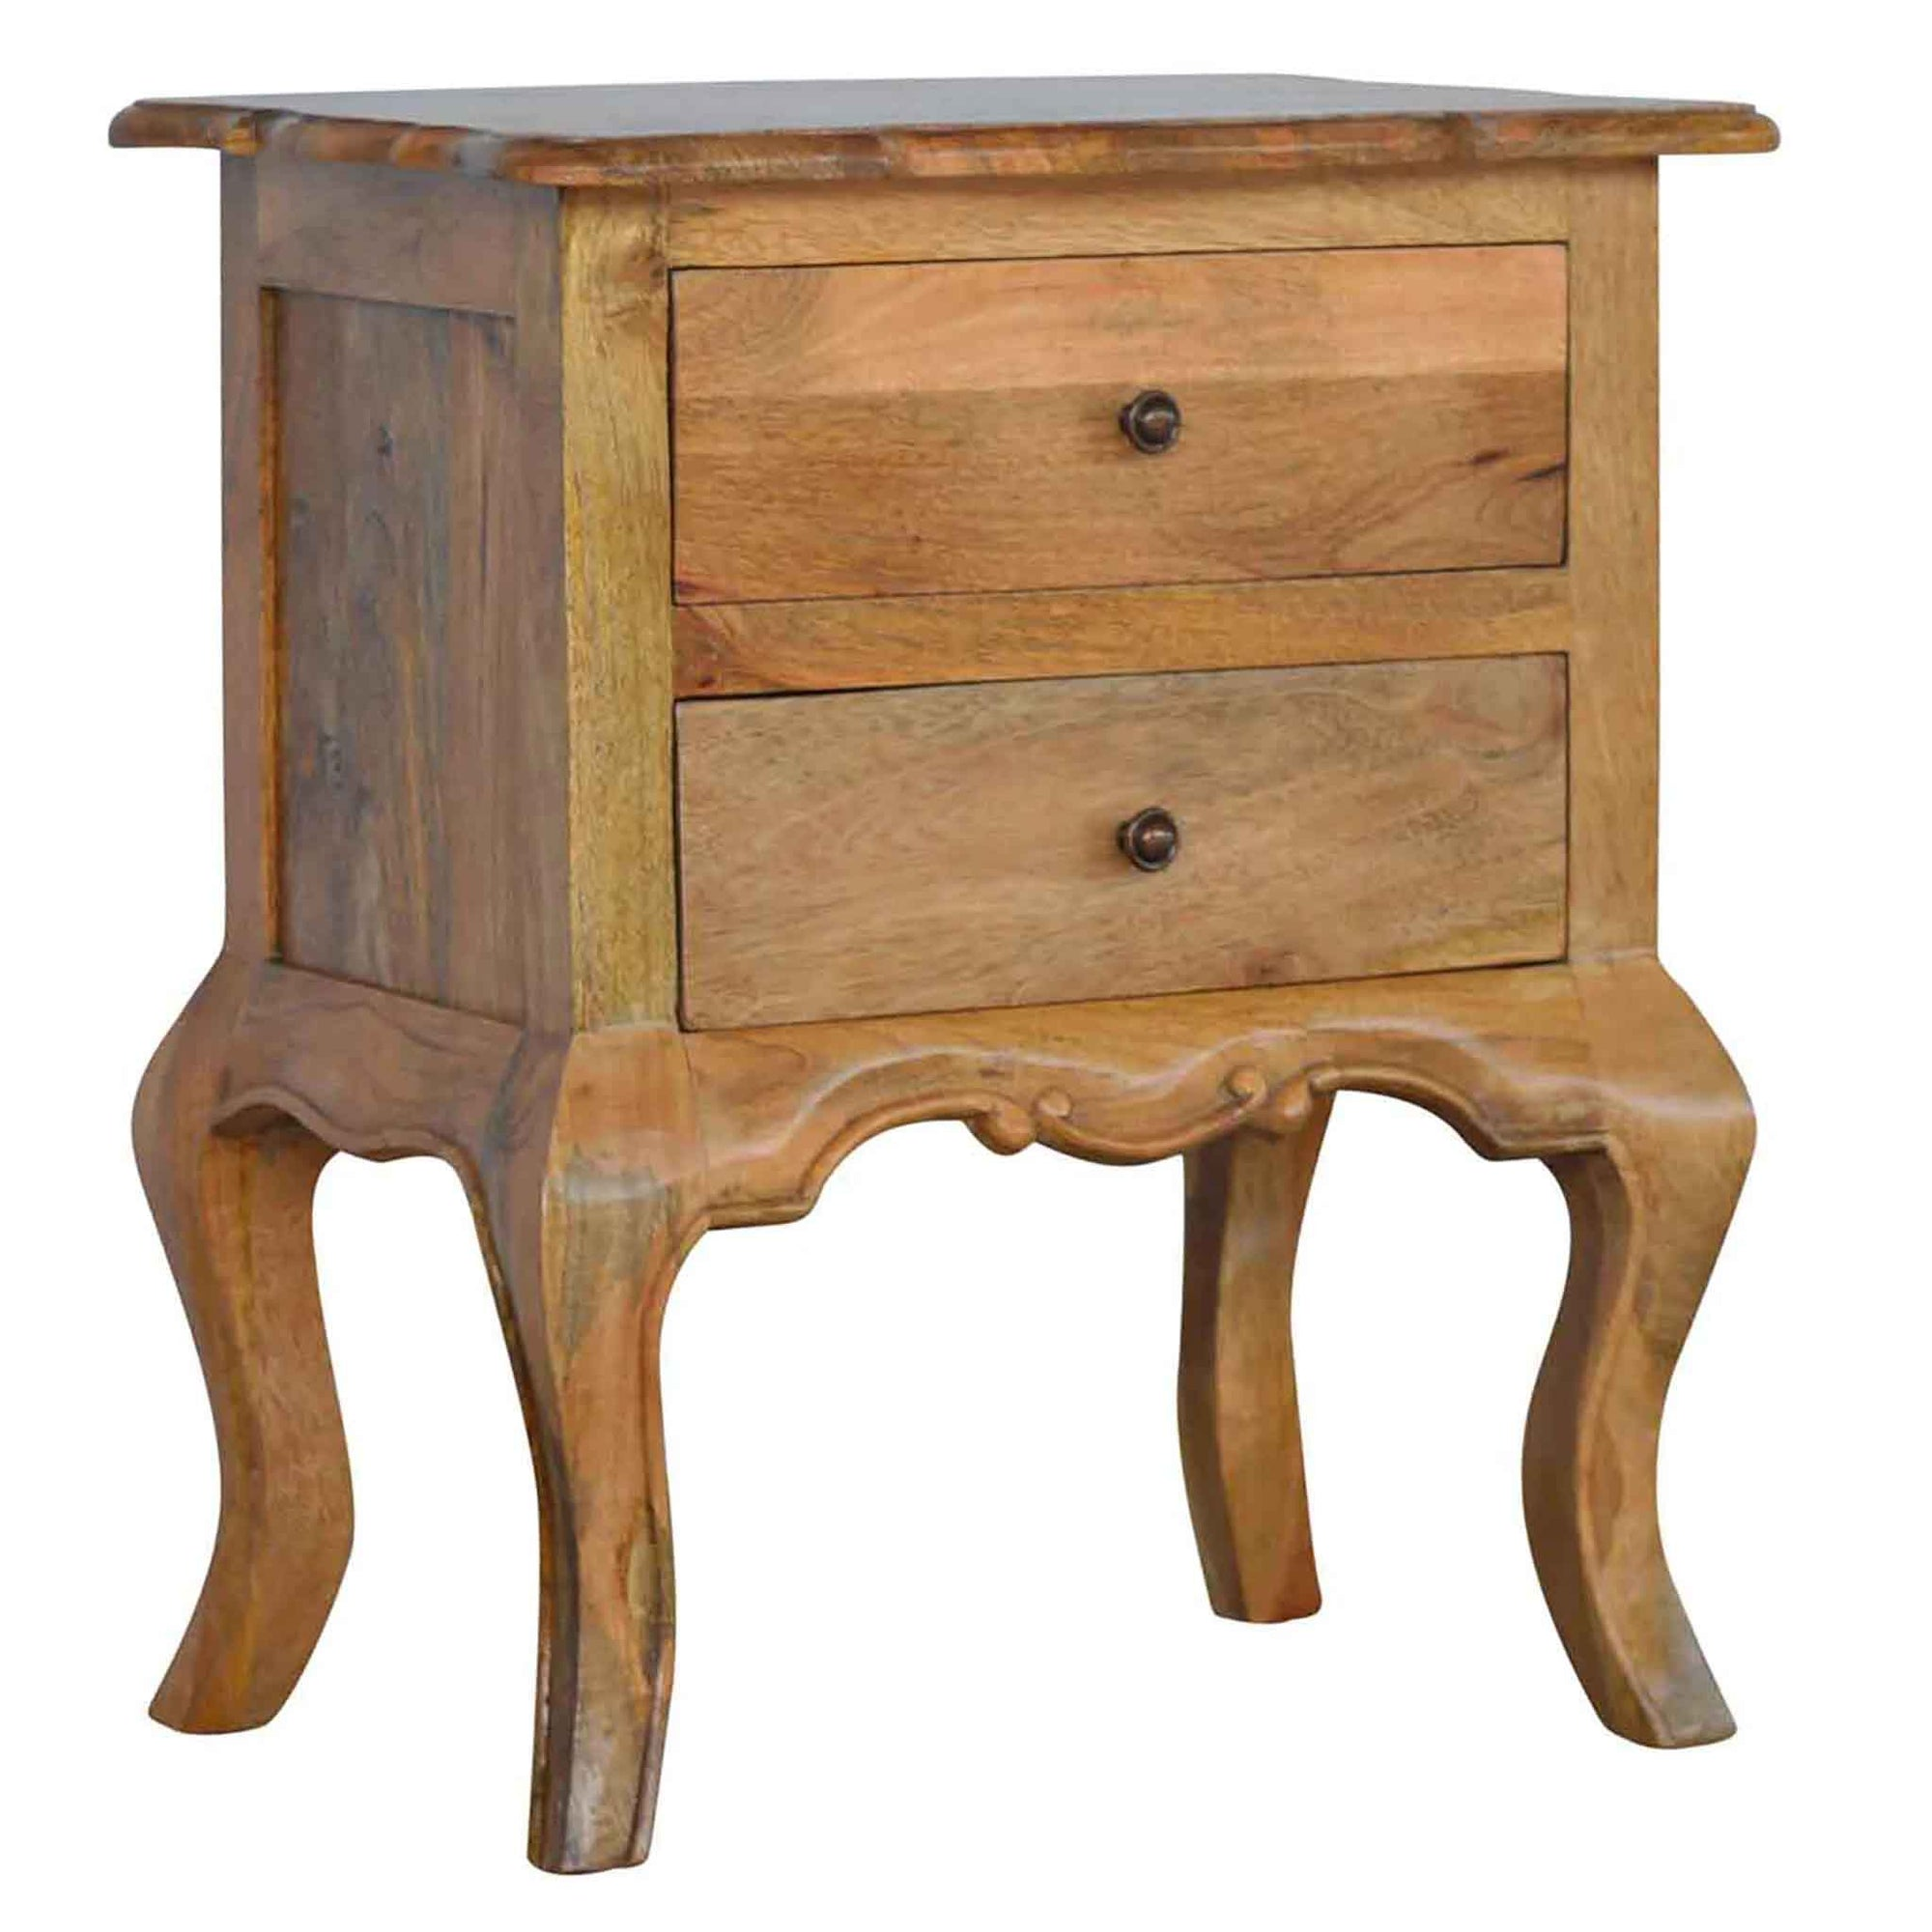 The Artisan French Cabriole 2 Drawer Bedside Table from Roseland Furniture